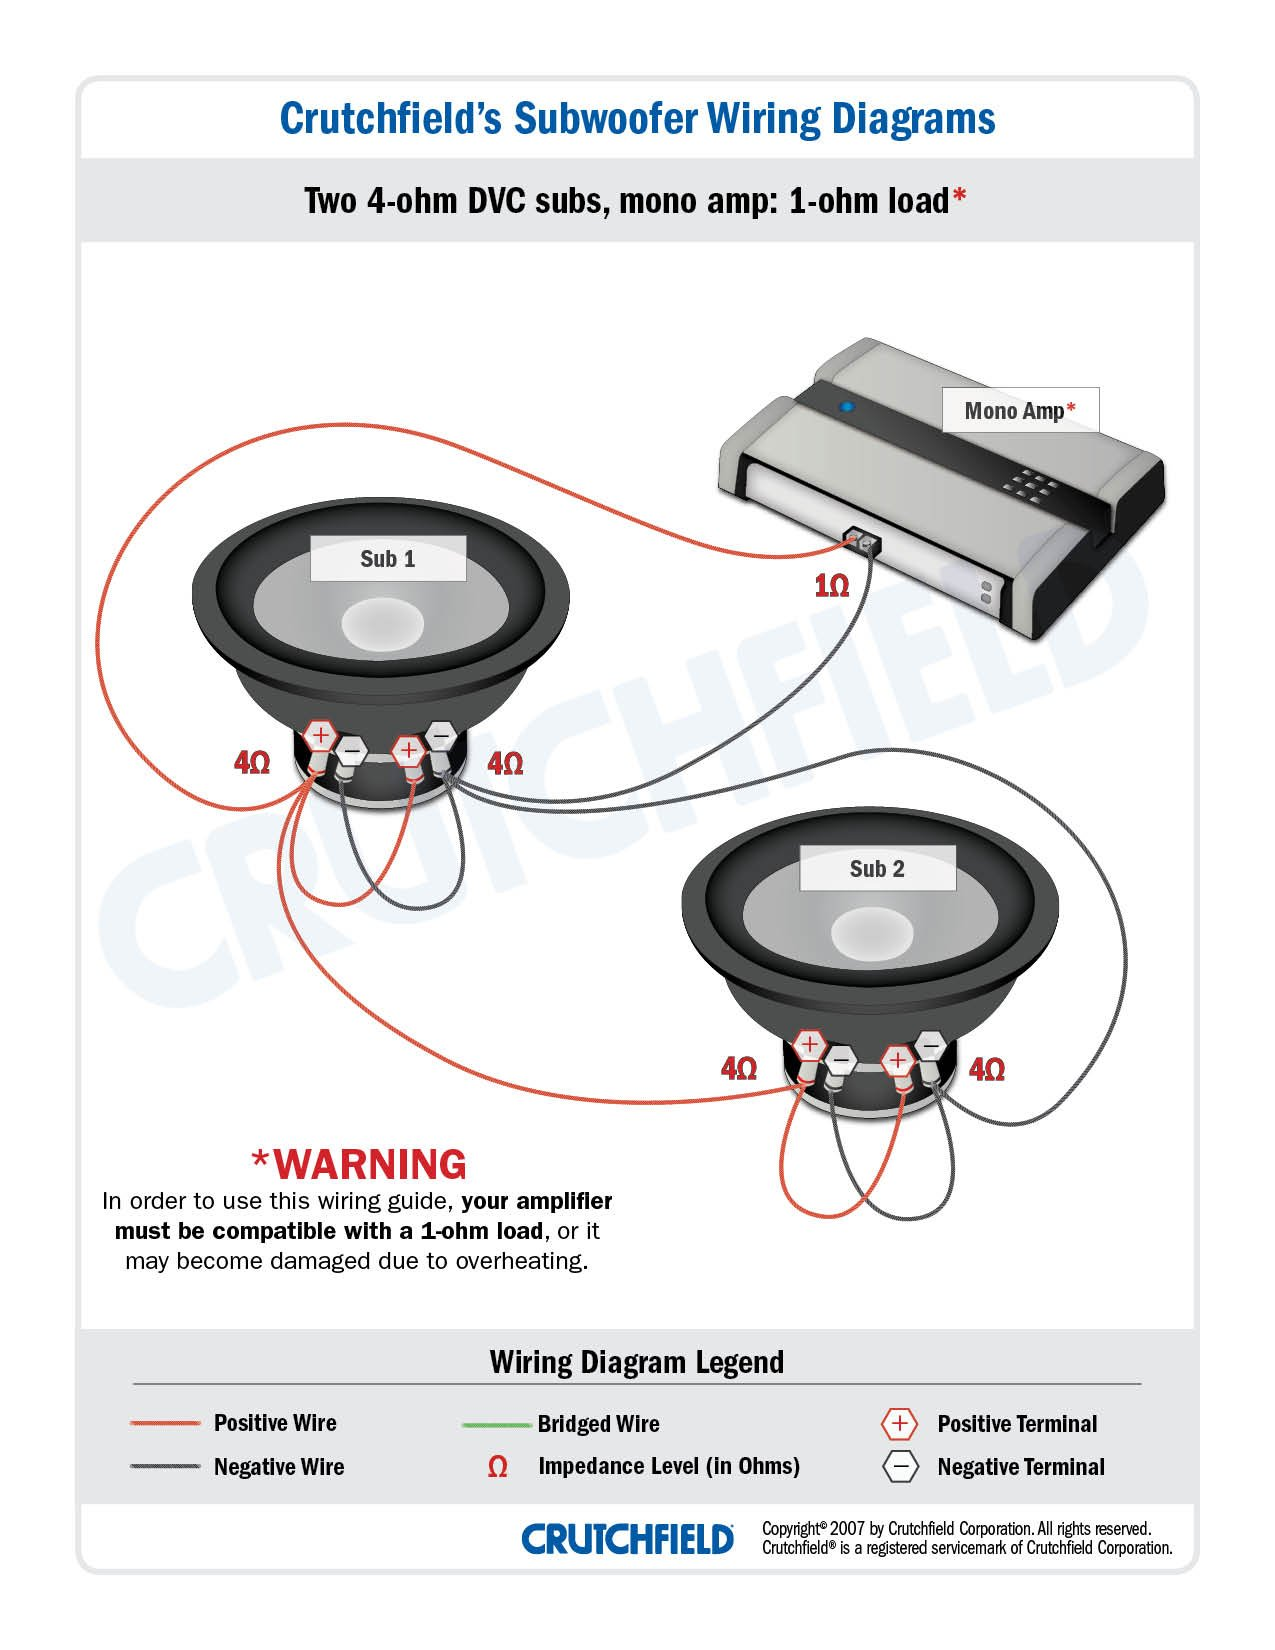 2 DVC 4 ohm mono low imp subwoofer wiring diagrams Kicker Flat Subwoofers at nearapp.co